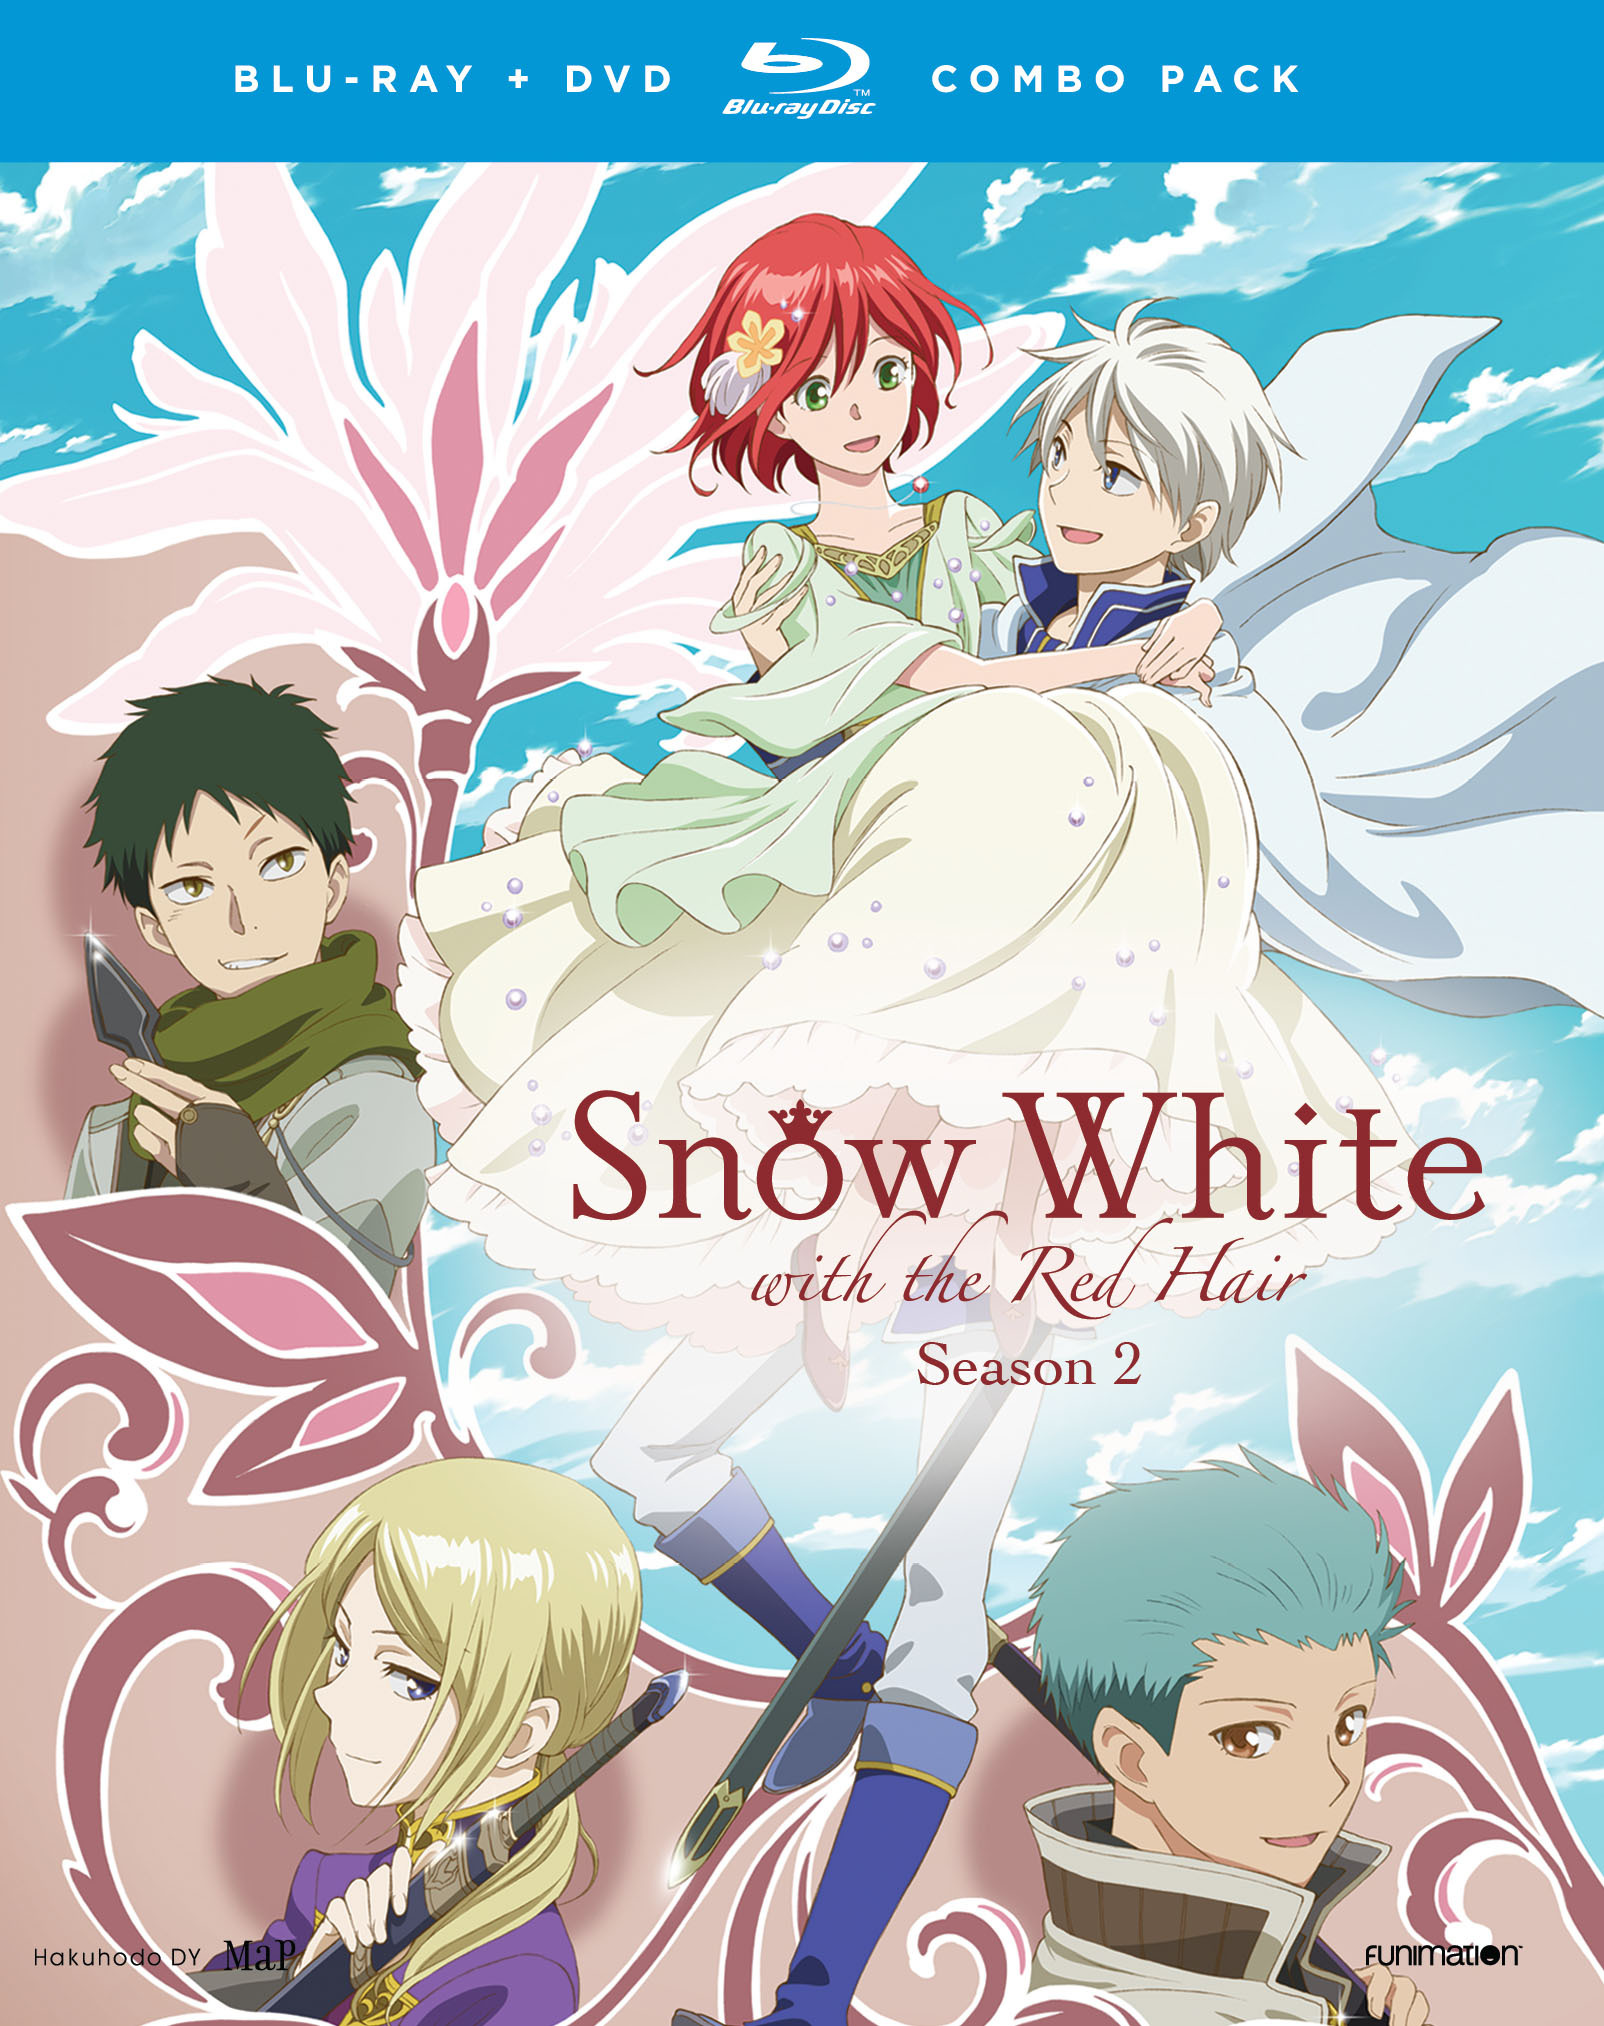 Snow White with the Red Hair Season 2 Blu-Ray/DVD 704400070617